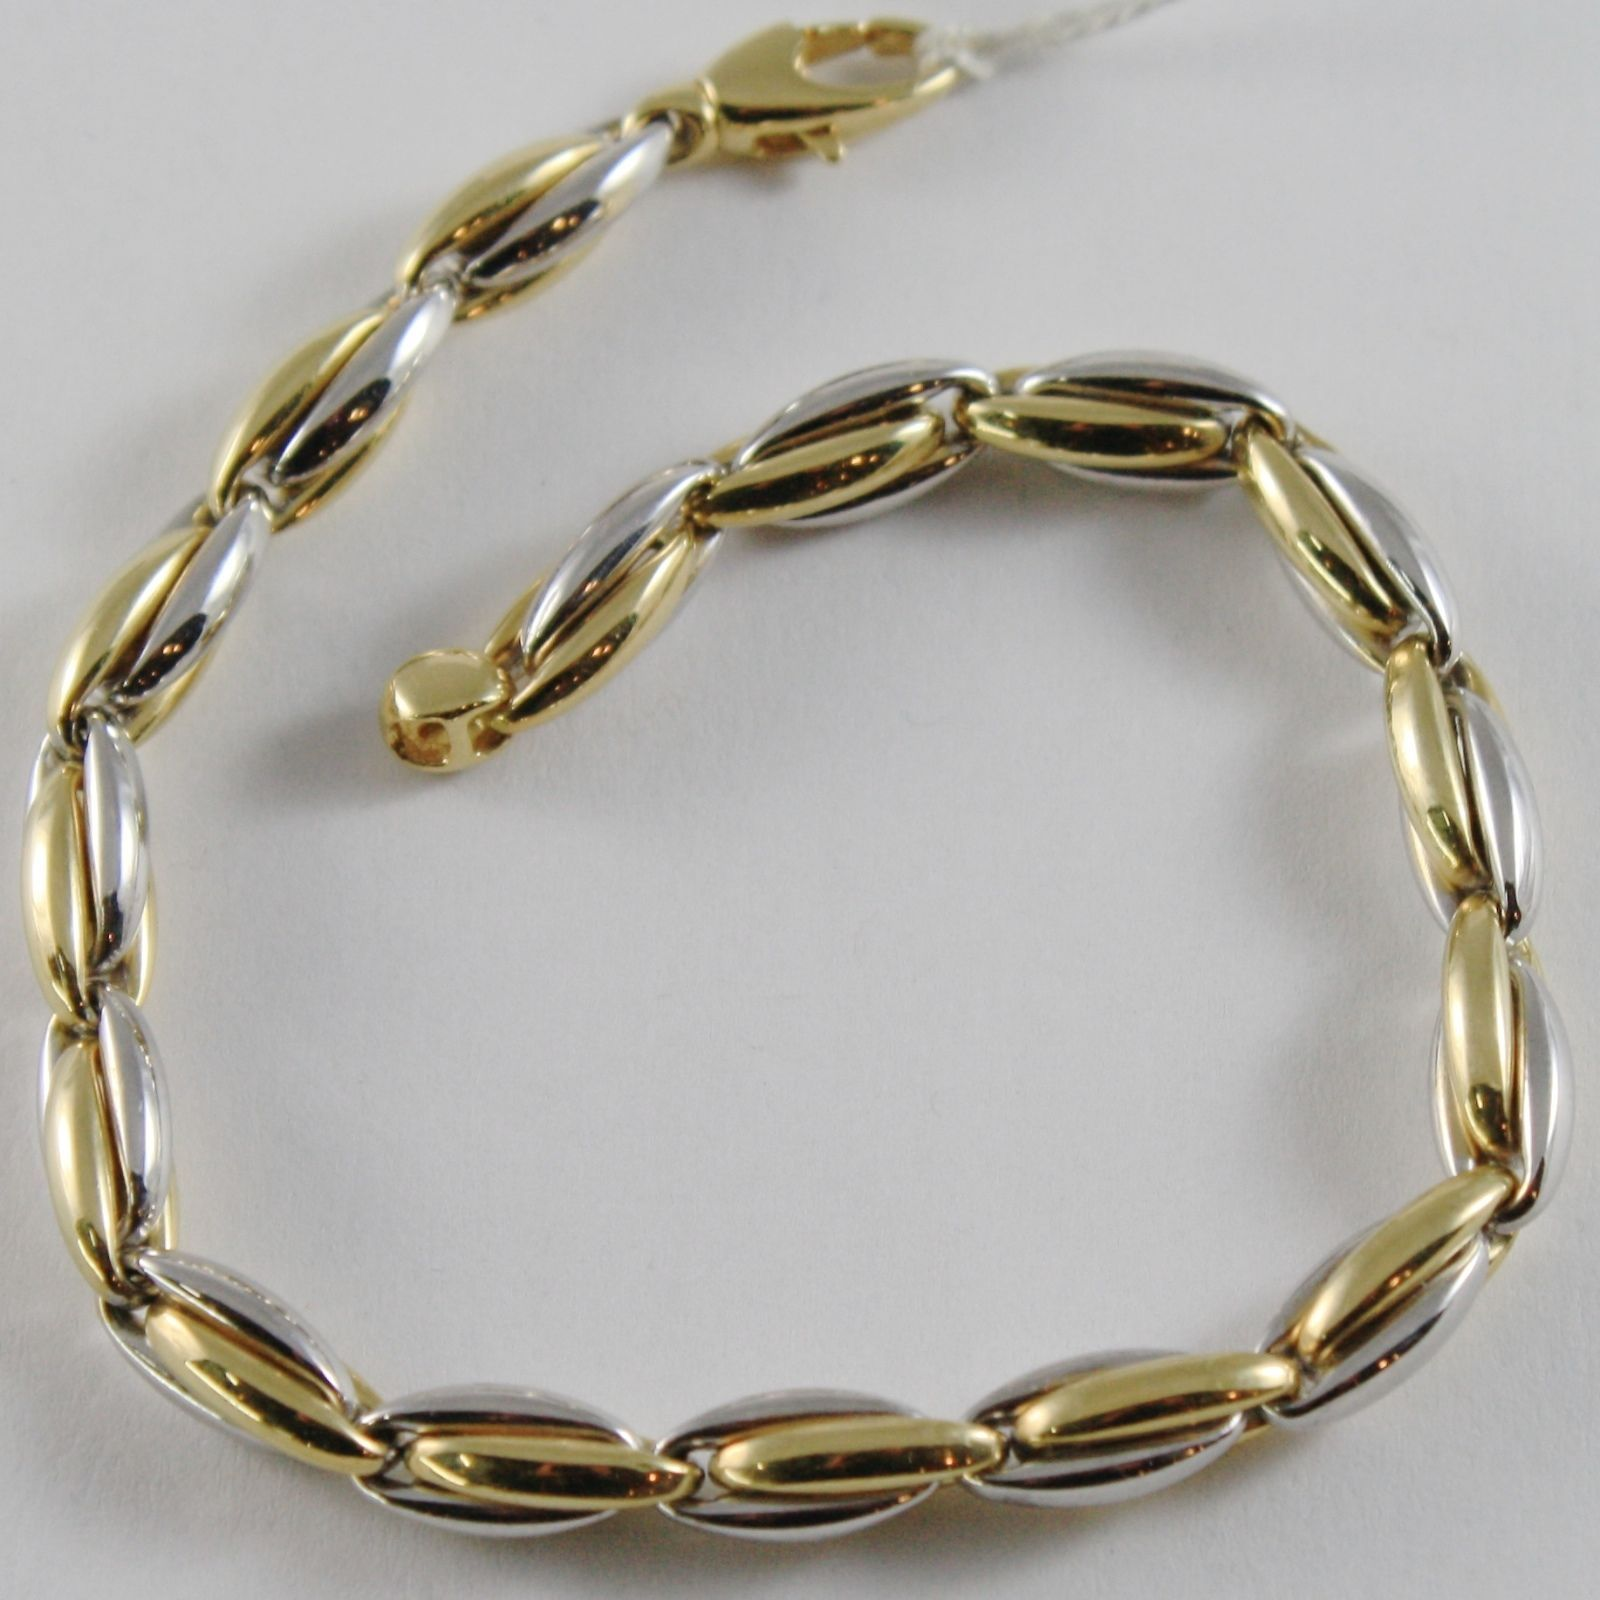 SOLID 18K YELLOW WHITE GOLD BRACELET DOUBLE OVAL ALTERNATE LINK, MADE IN ITALY